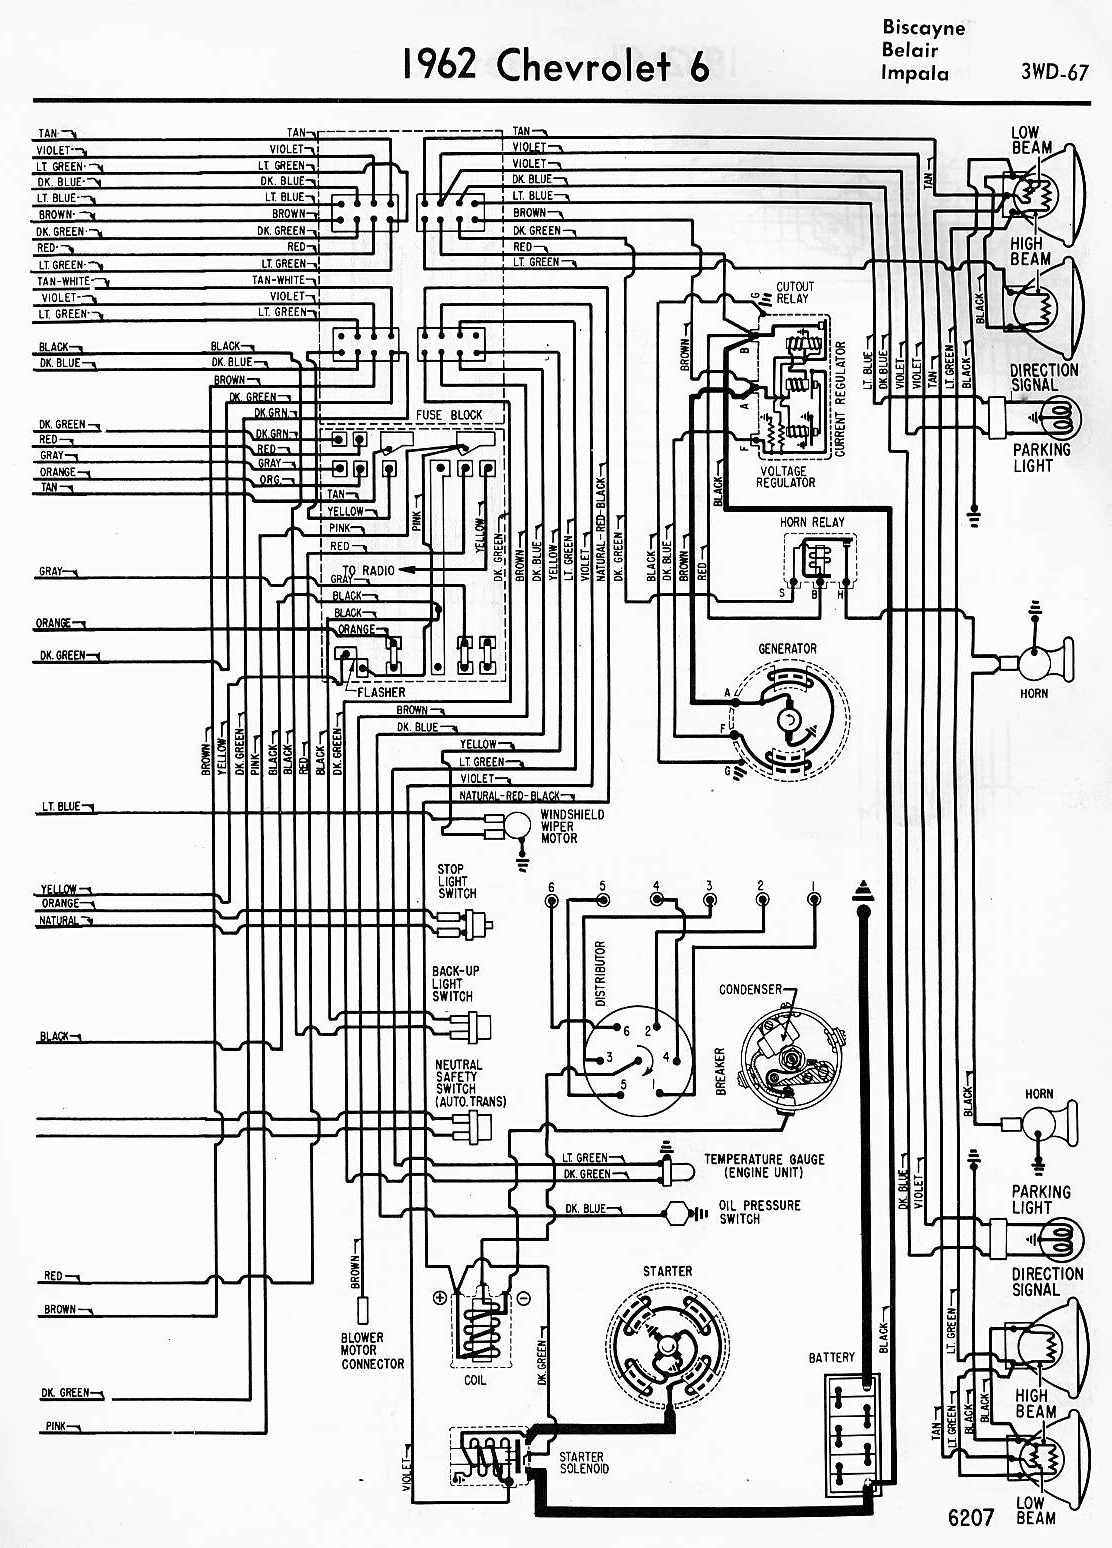 Electric Fuse Box Diagram Wiring Harness Free Image Go Back Gt Gallery For Chevy 350 Starter 1979 Data